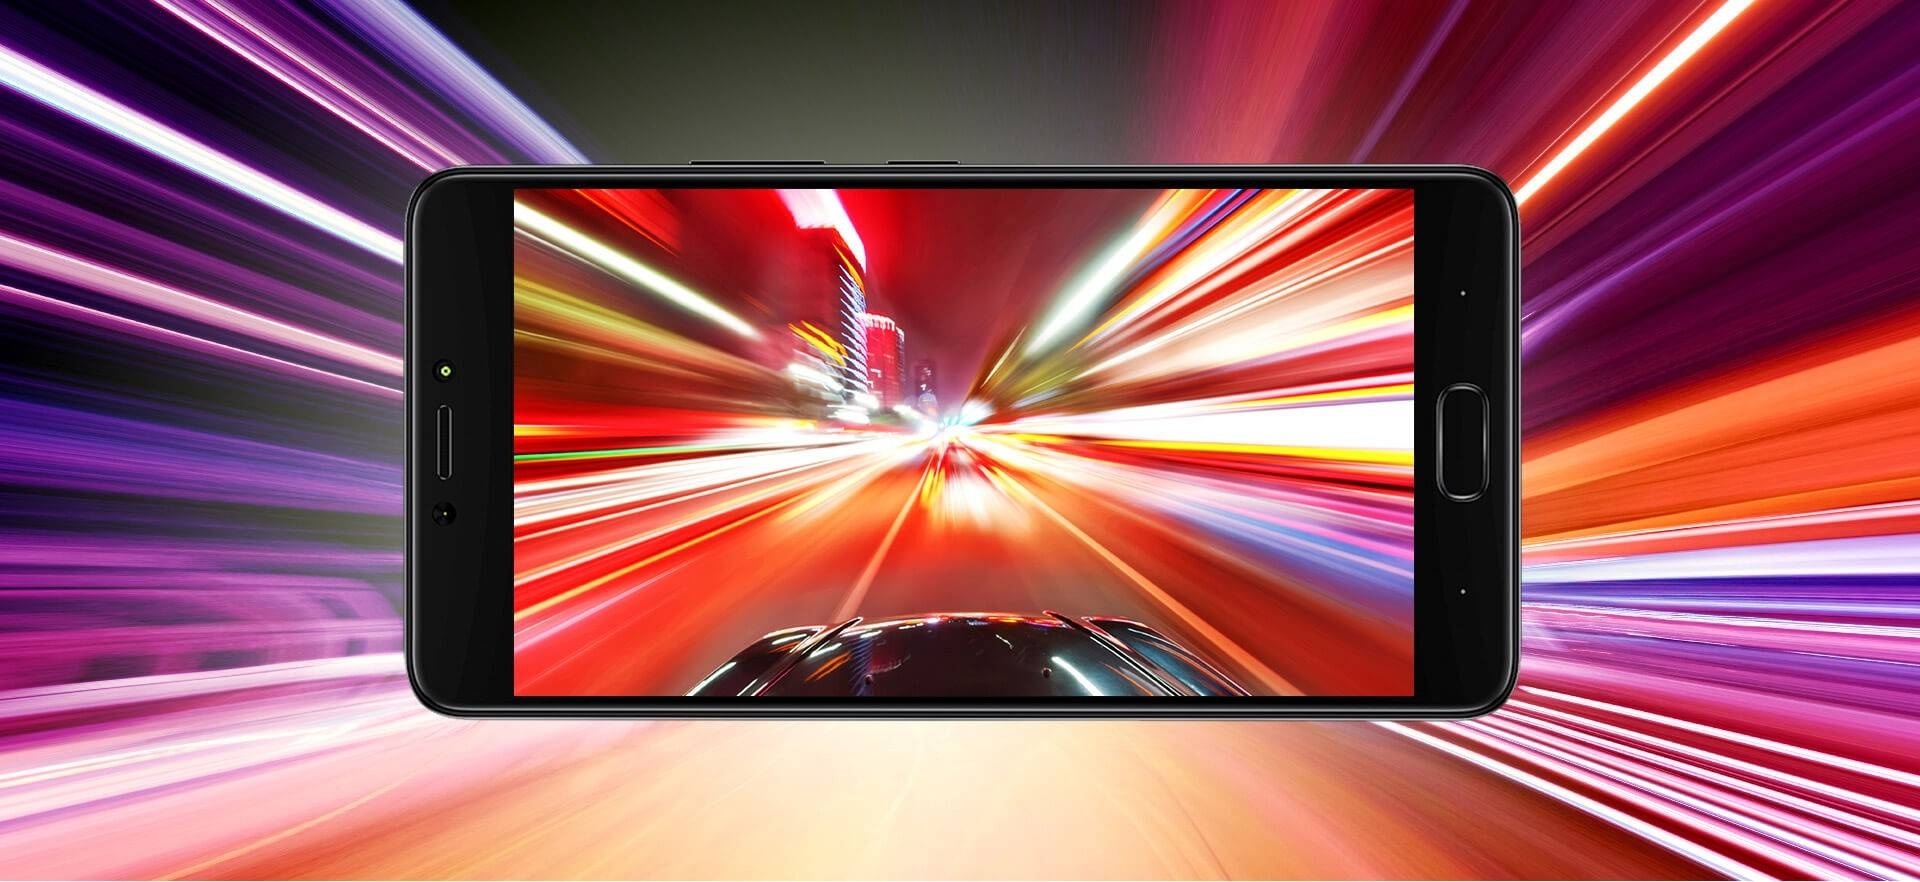 Image result for X571 note 4